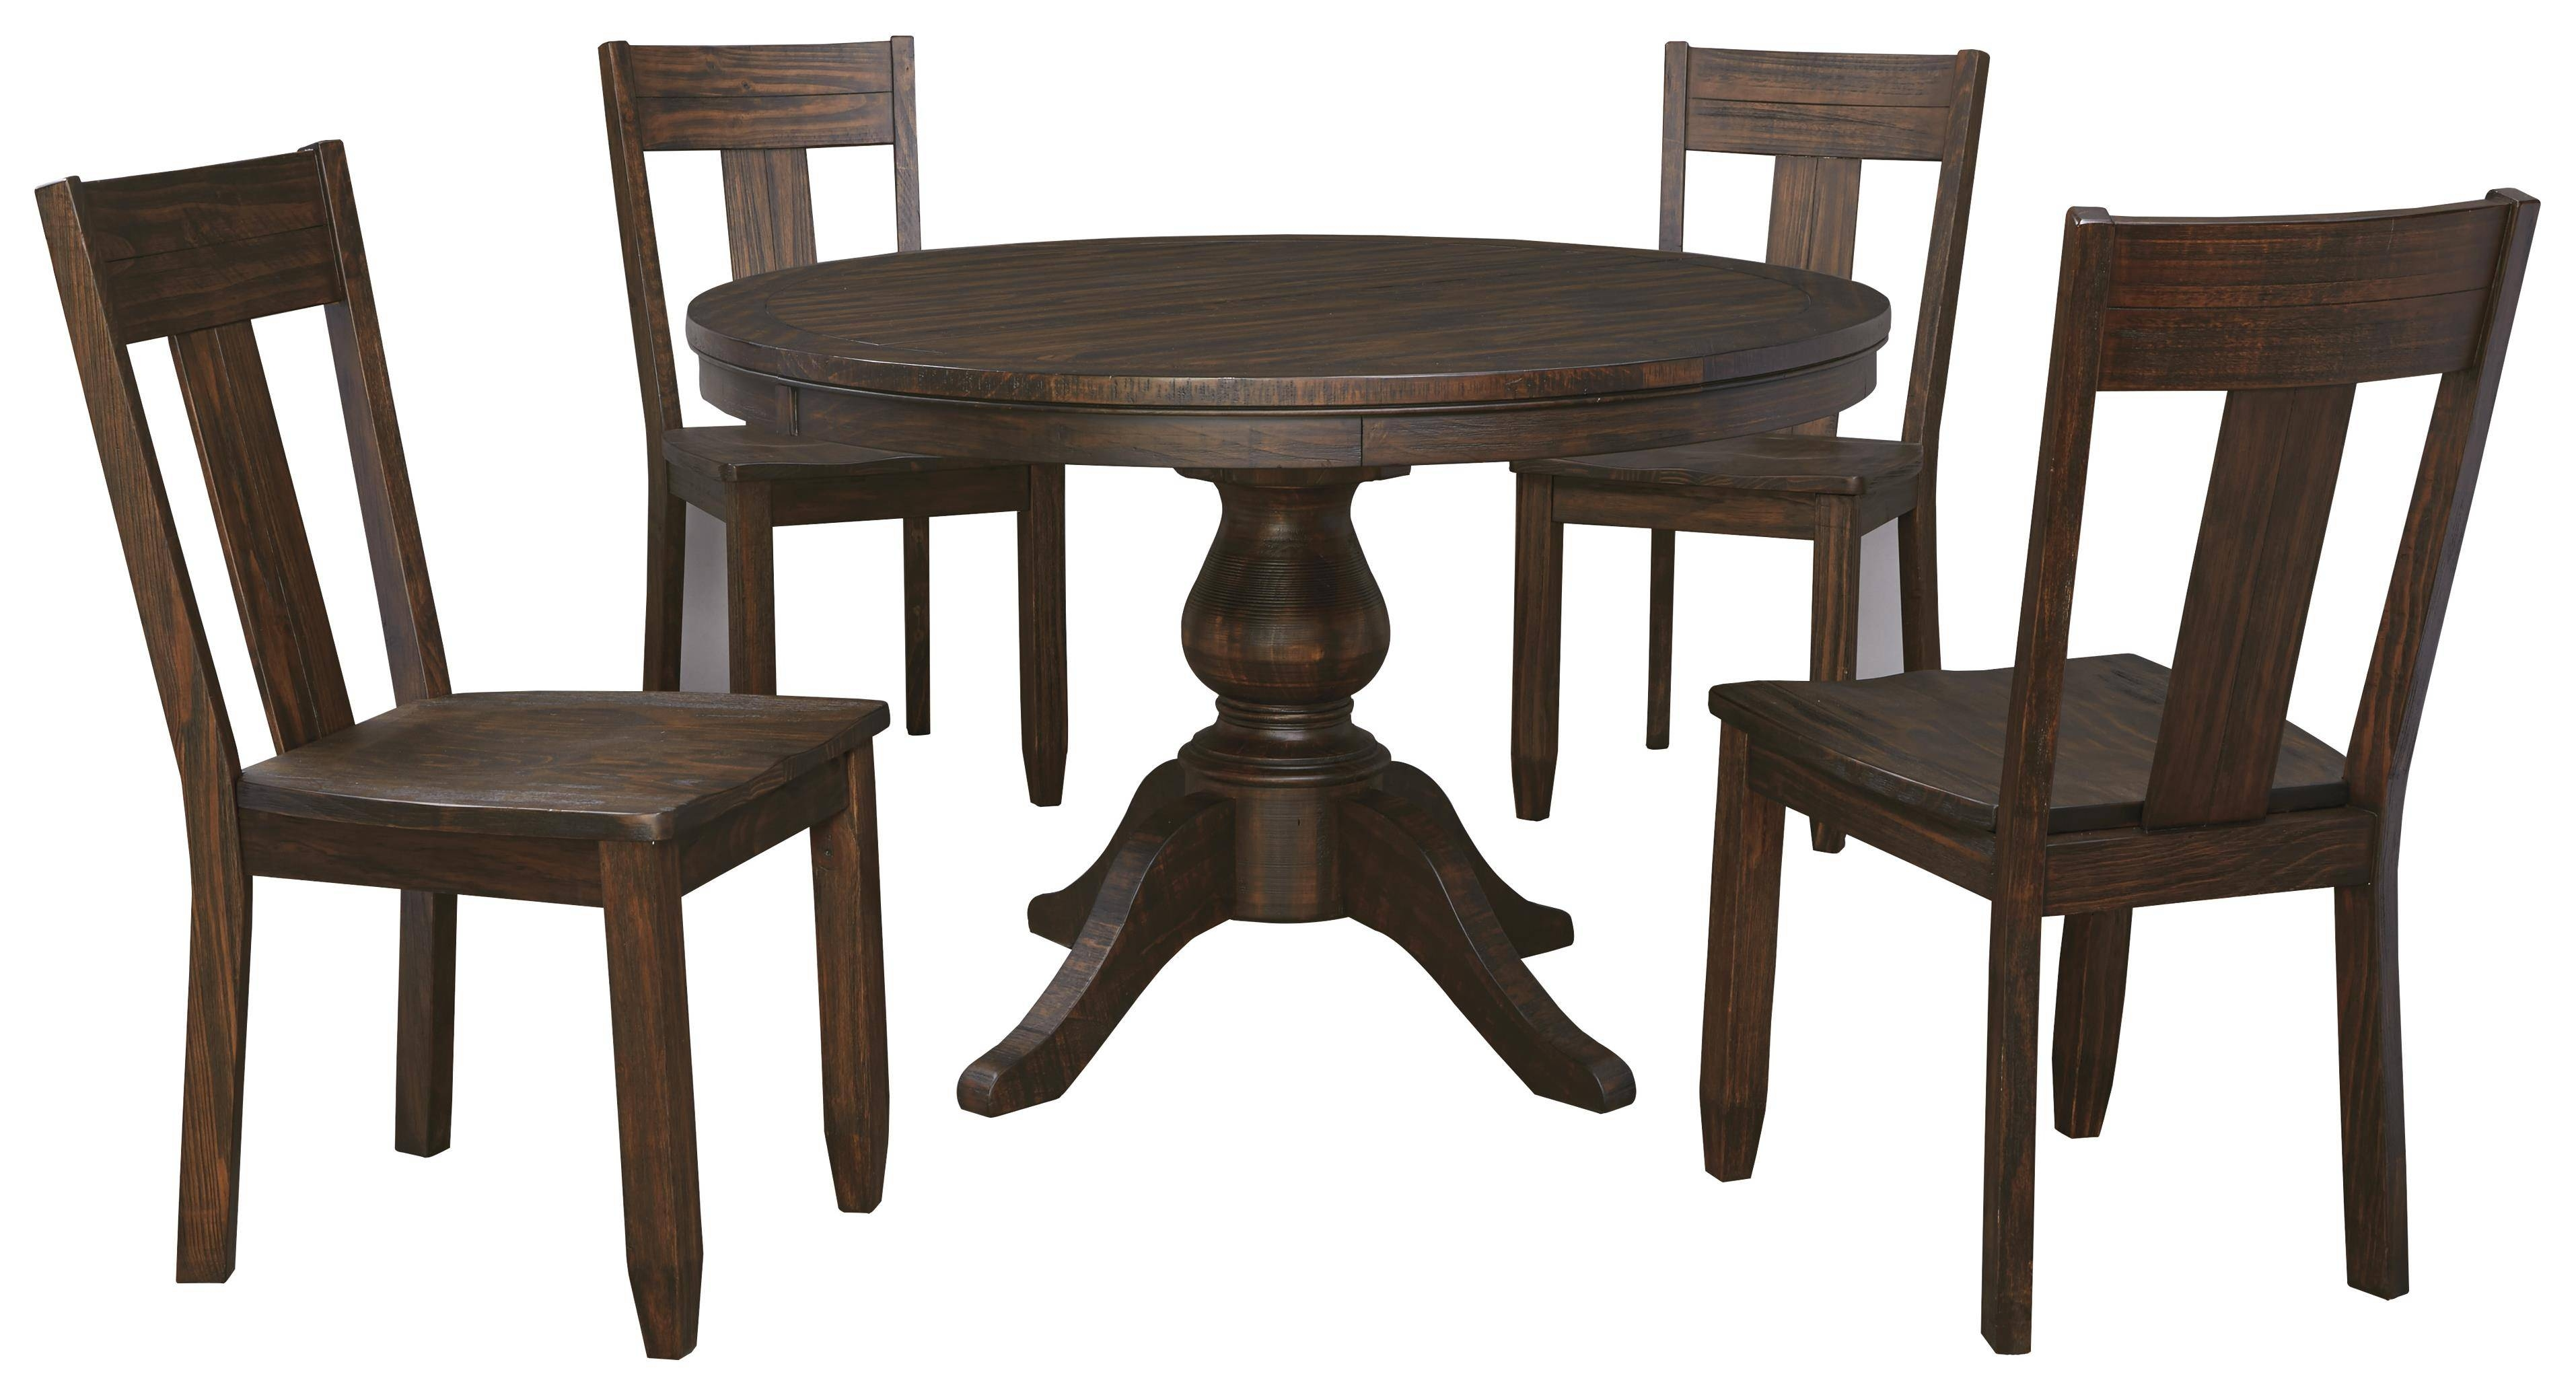 Kitchen : Dining Chairs For Sale Kitchen Island Dining Room Table pertaining to Sofa Table With Chairs (Image 20 of 30)